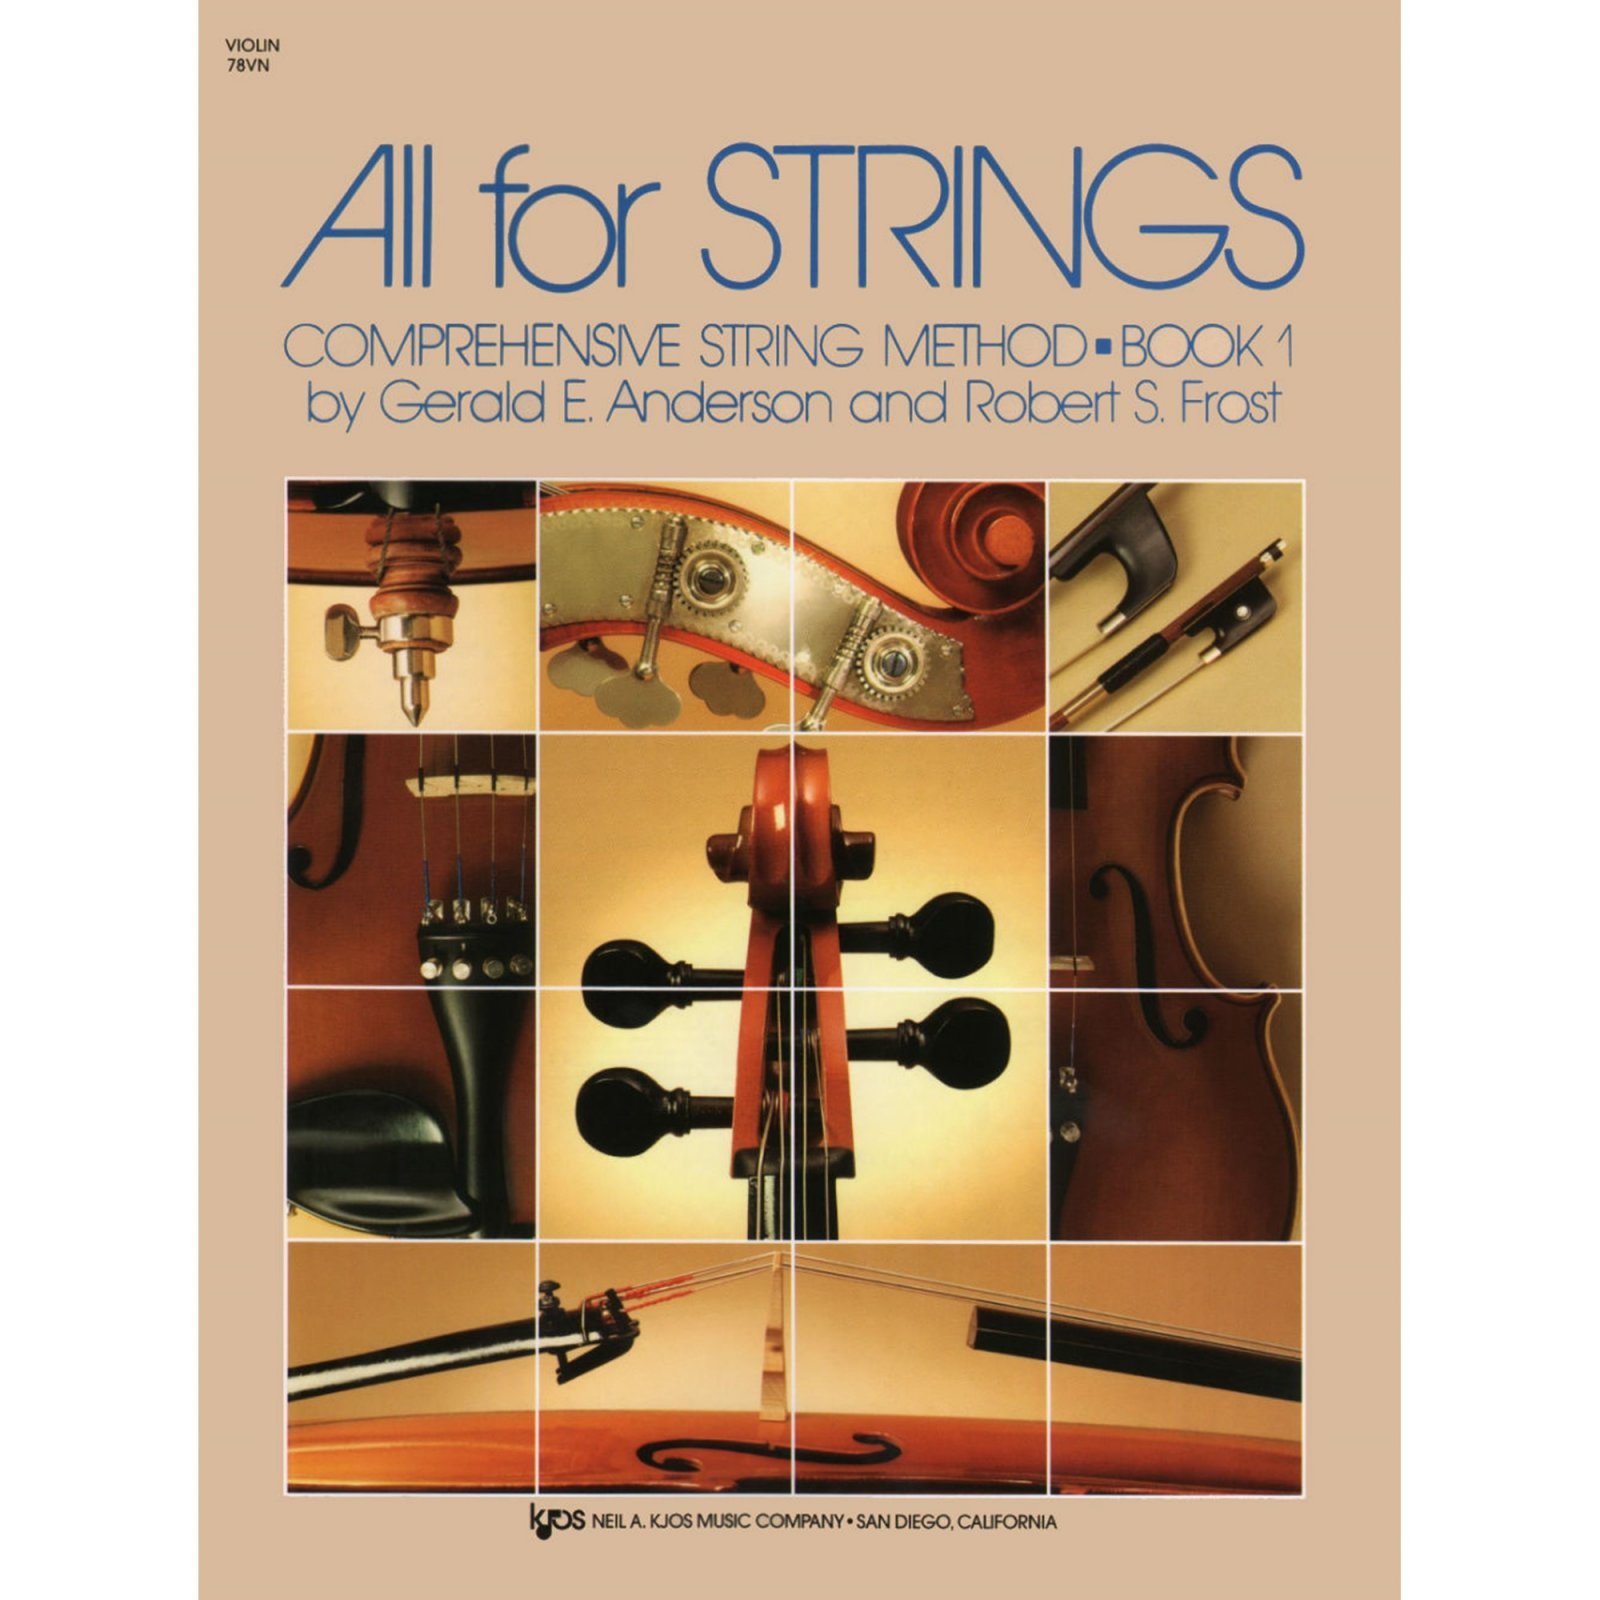 All For Strings Comprehensive String Method Violin Book One